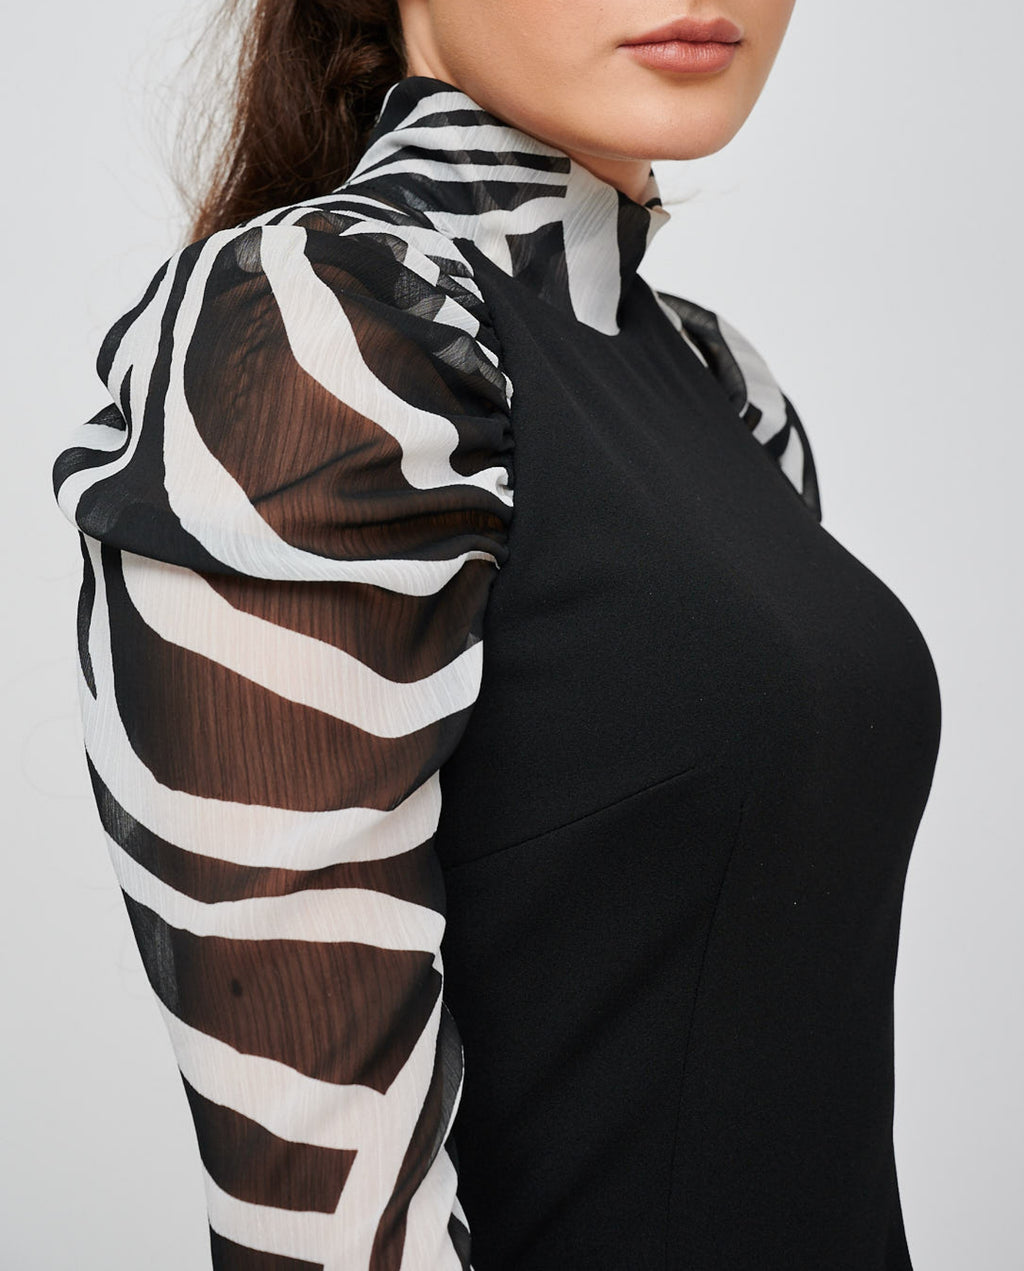 The EOS ZEBRA Print Sleeved Black Dress Detail